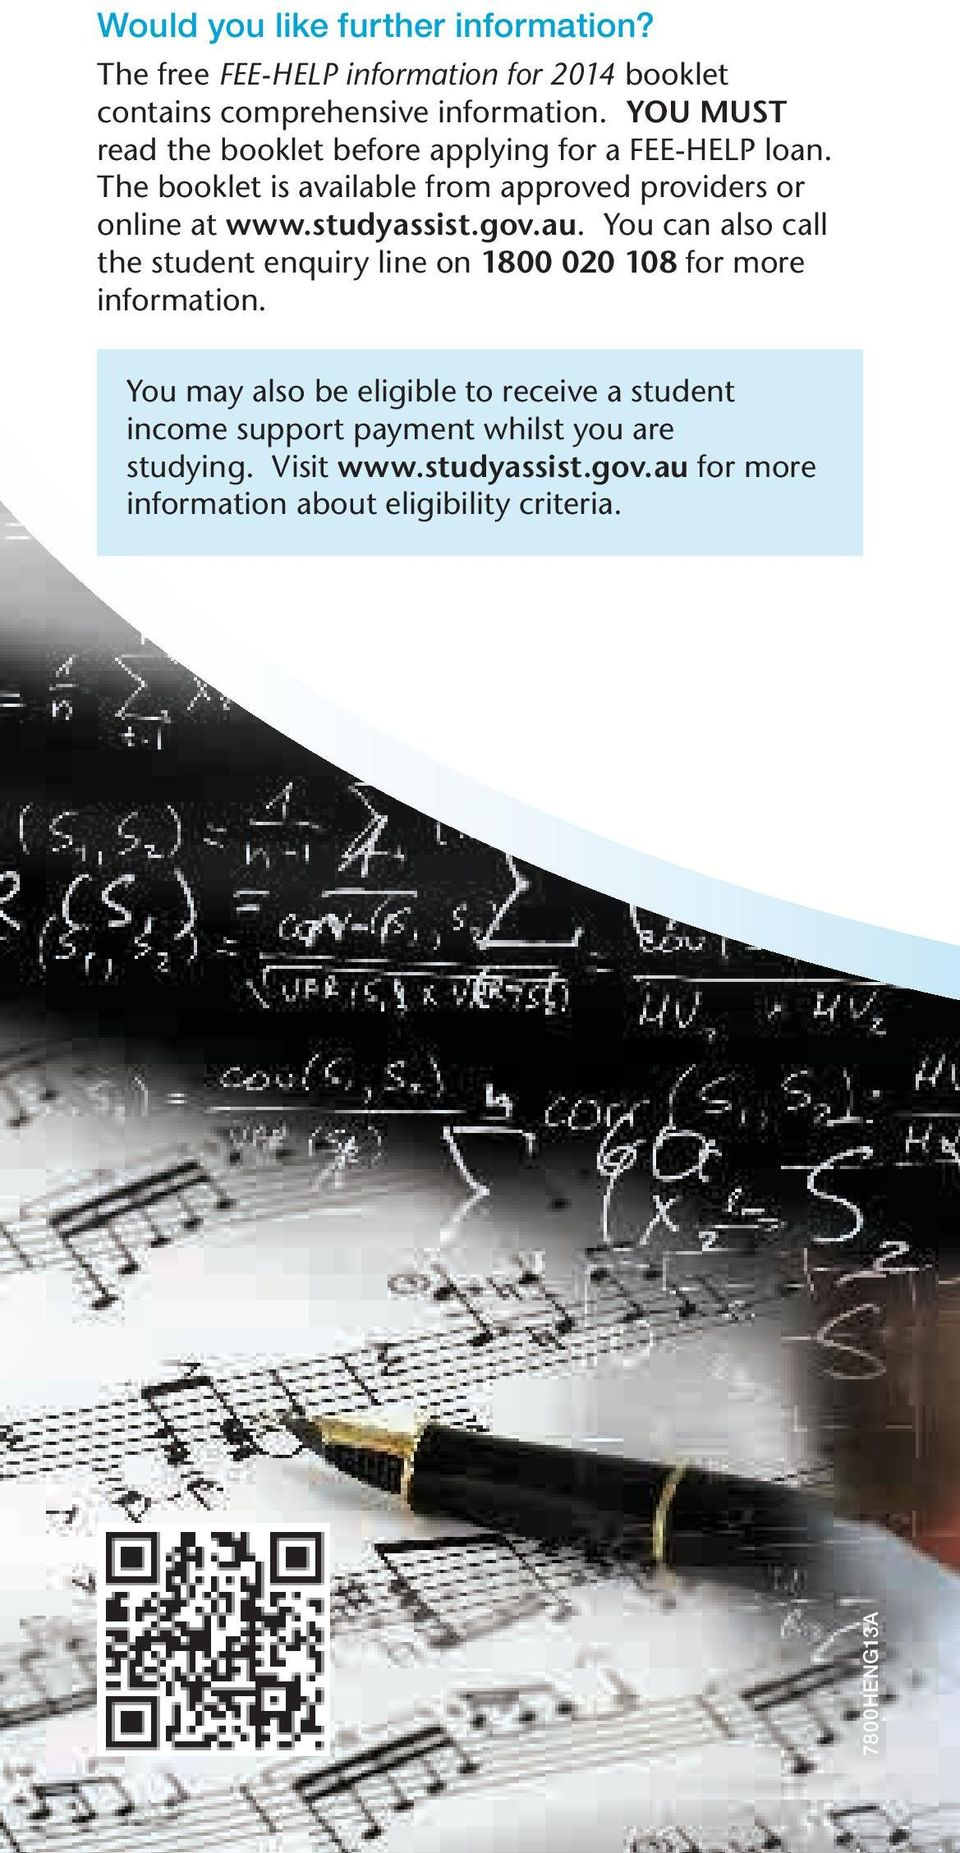 studyassist.gov.au. You can also call the student enquiry line on 1800 020 108 for more information.